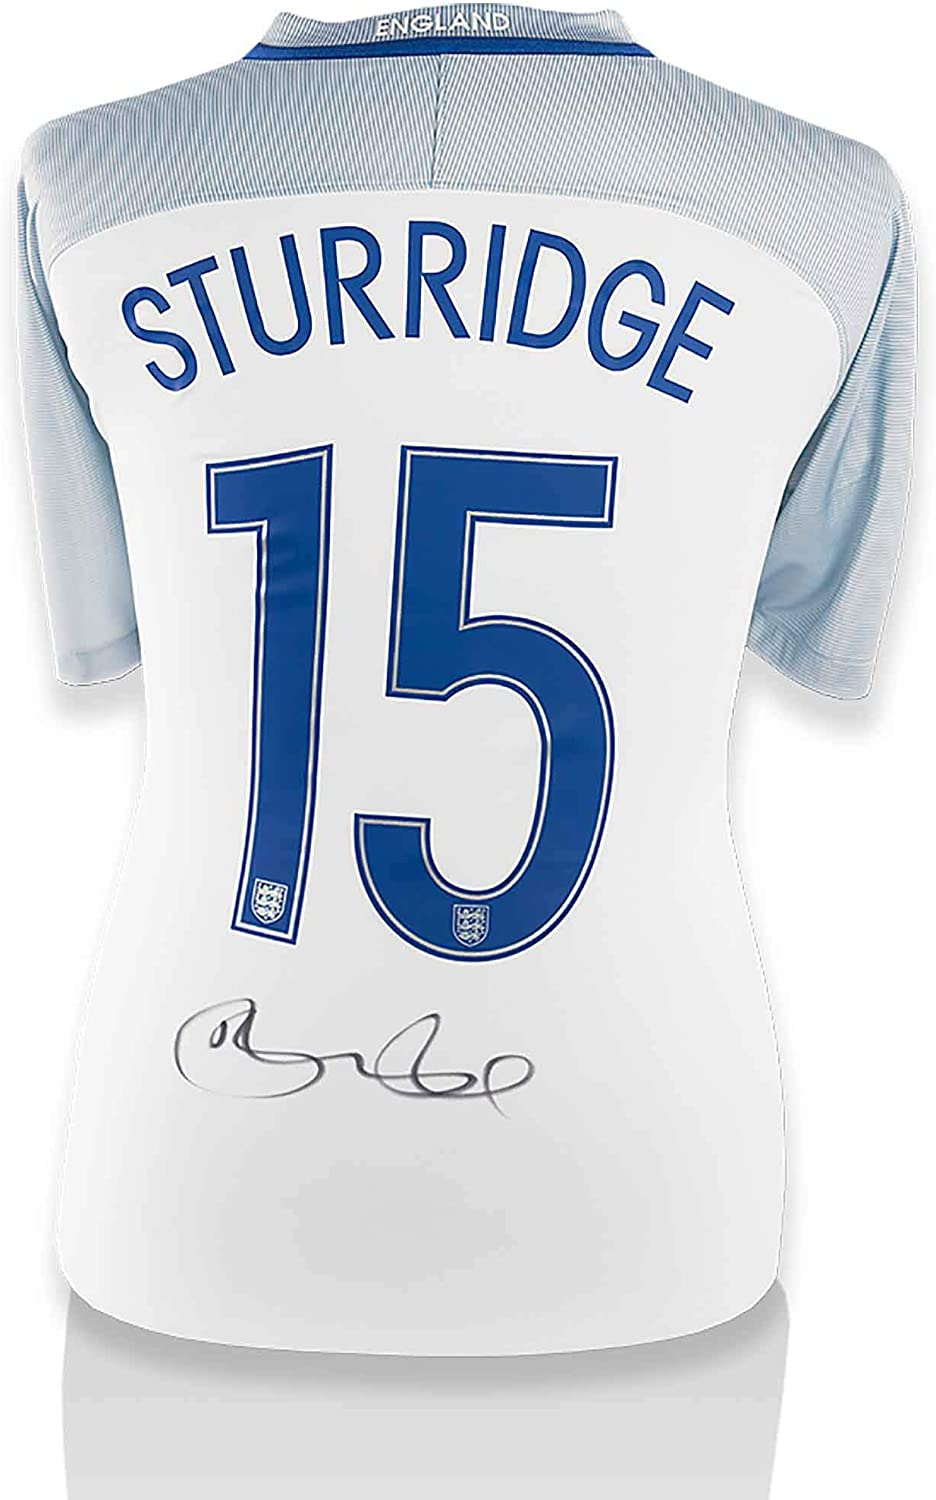 Daniel Sturridge England National Team Autographed 2016-2017 Home Jersey - ICONS - Fanatics Authentic Certified